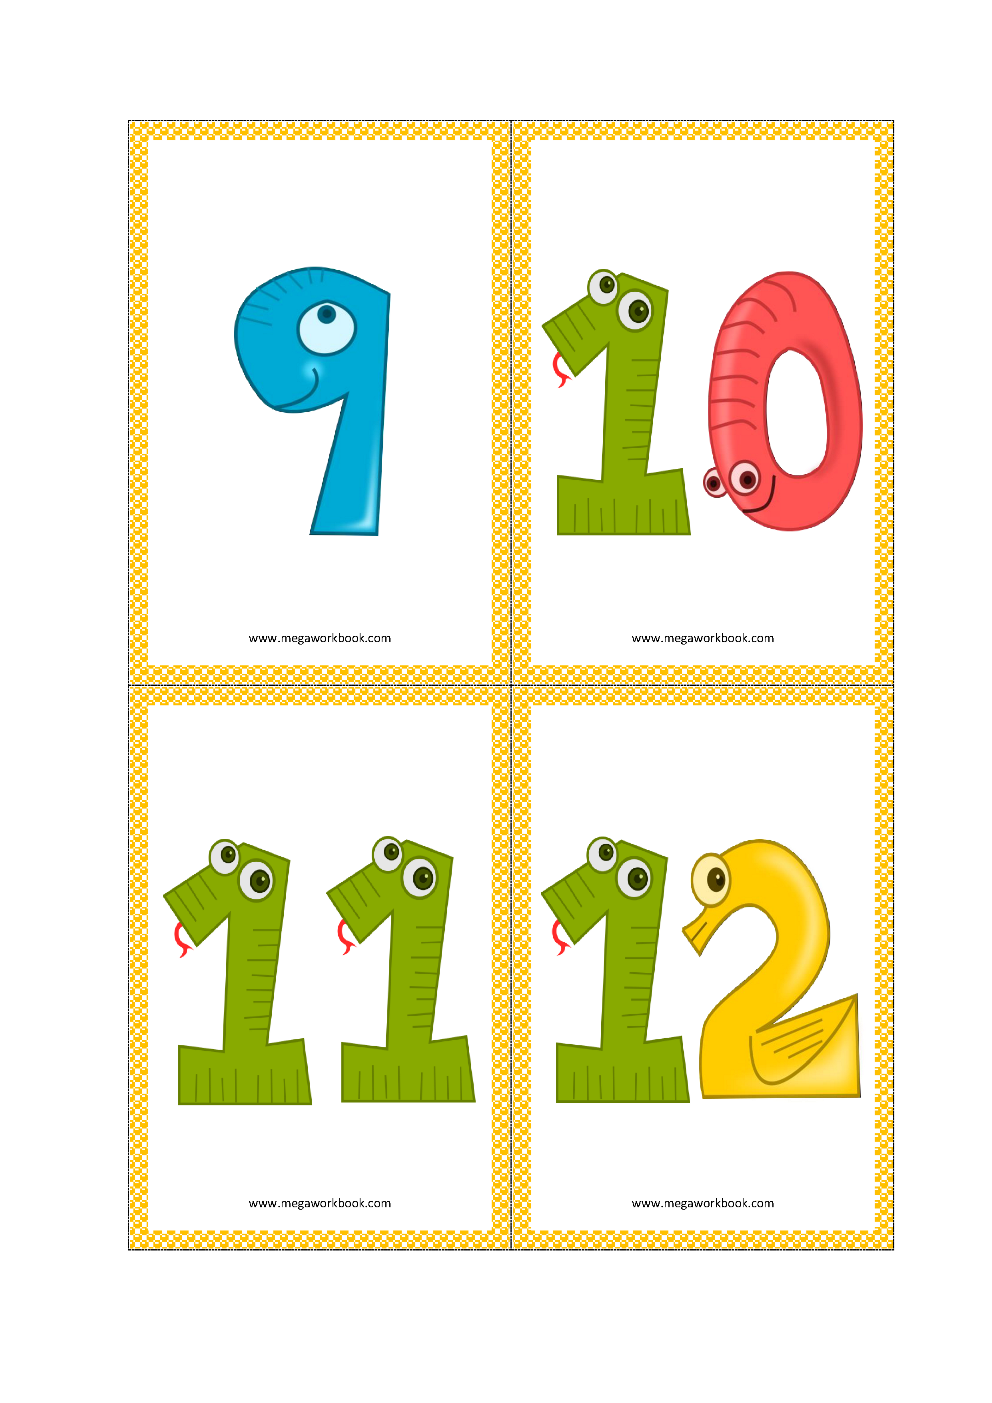 graphic about Free Printable Number Cards 1-20 titled Selection Flashcards - Range Flashcards Printable Cost-free - (1 in direction of